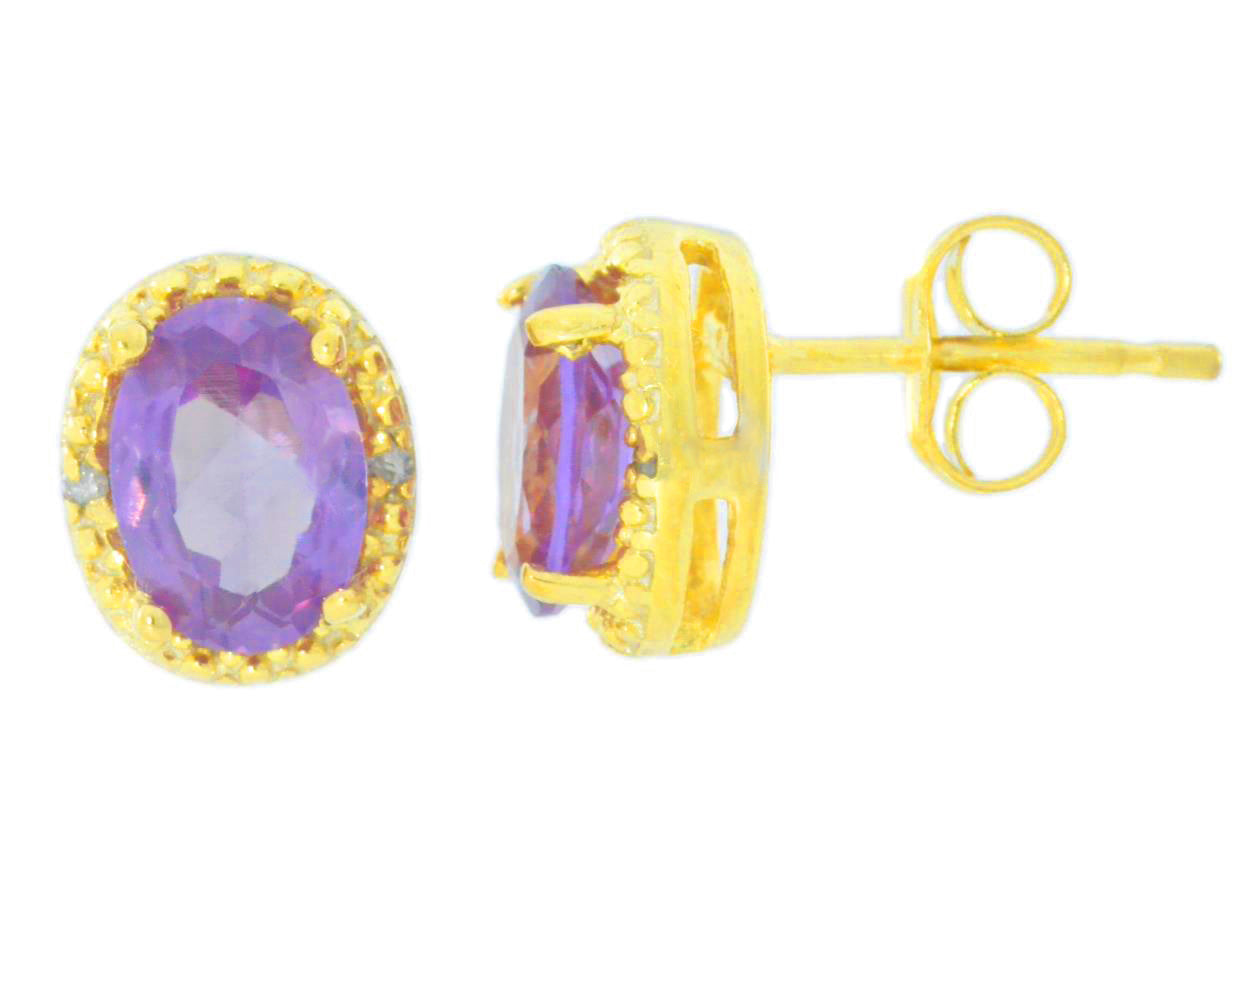 2 Ct Alexandrite & Diamond Oval Stud Earrings 14Kt Yellow Gold Plated